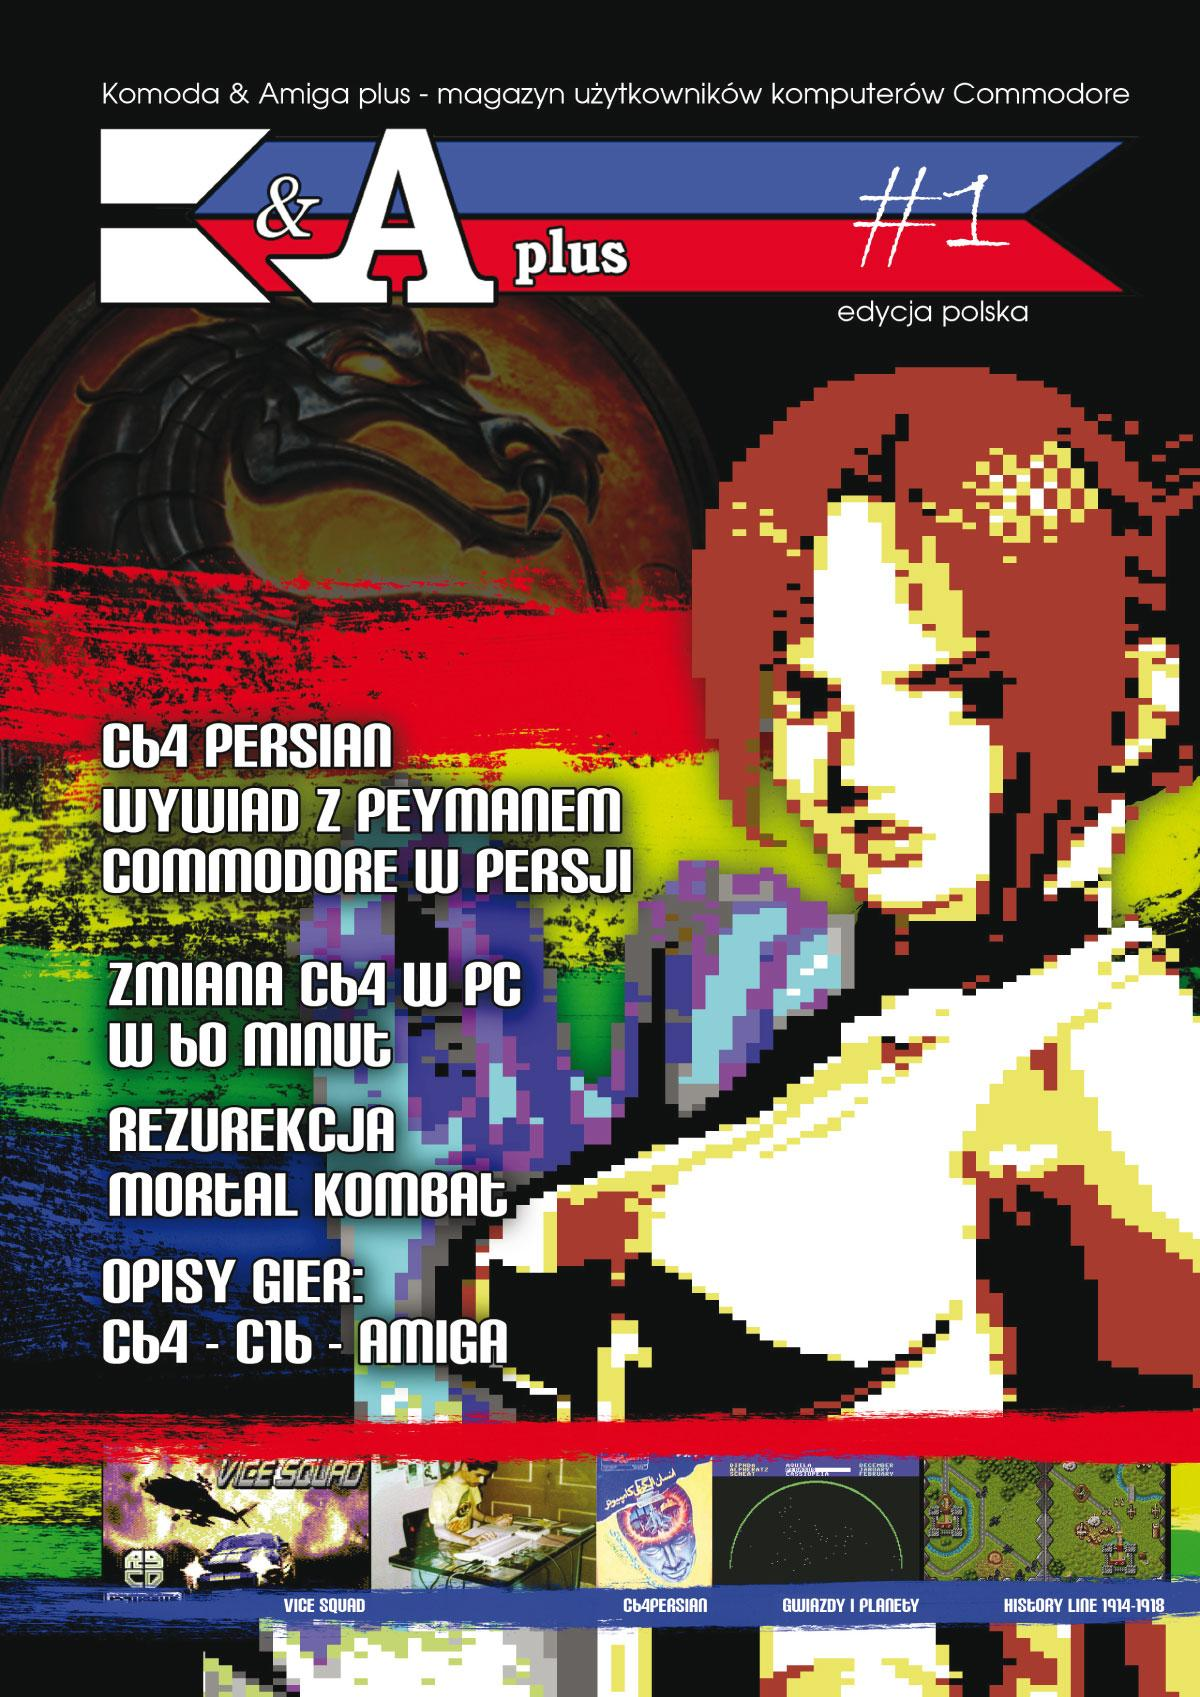 pdf:magazyn:commodore:amiga:K&A Plus:Nr 1/2015